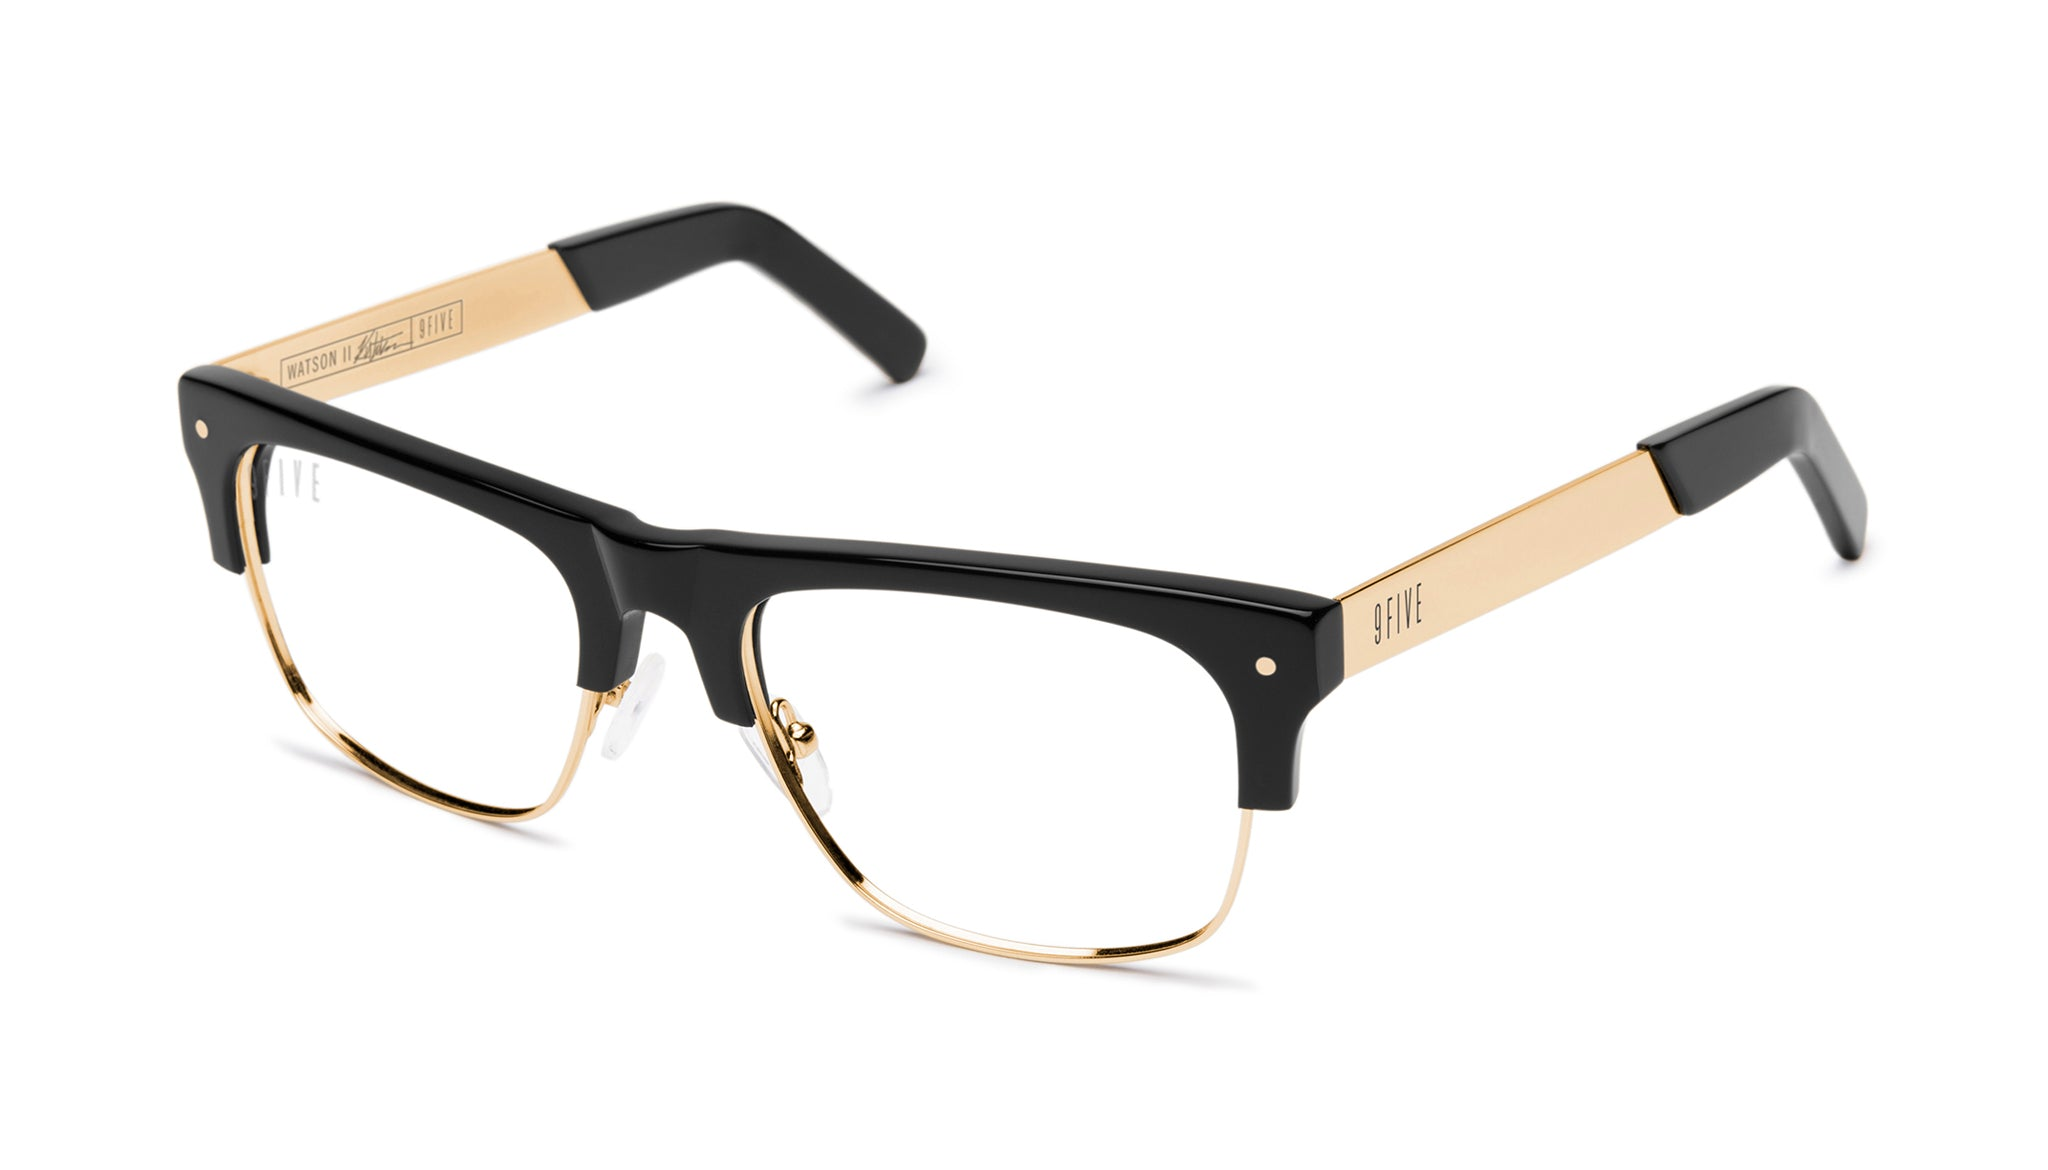 fa2cc86b6b SHOP PRESCRIPTION EYEWEAR – 9FIVE Eyewear